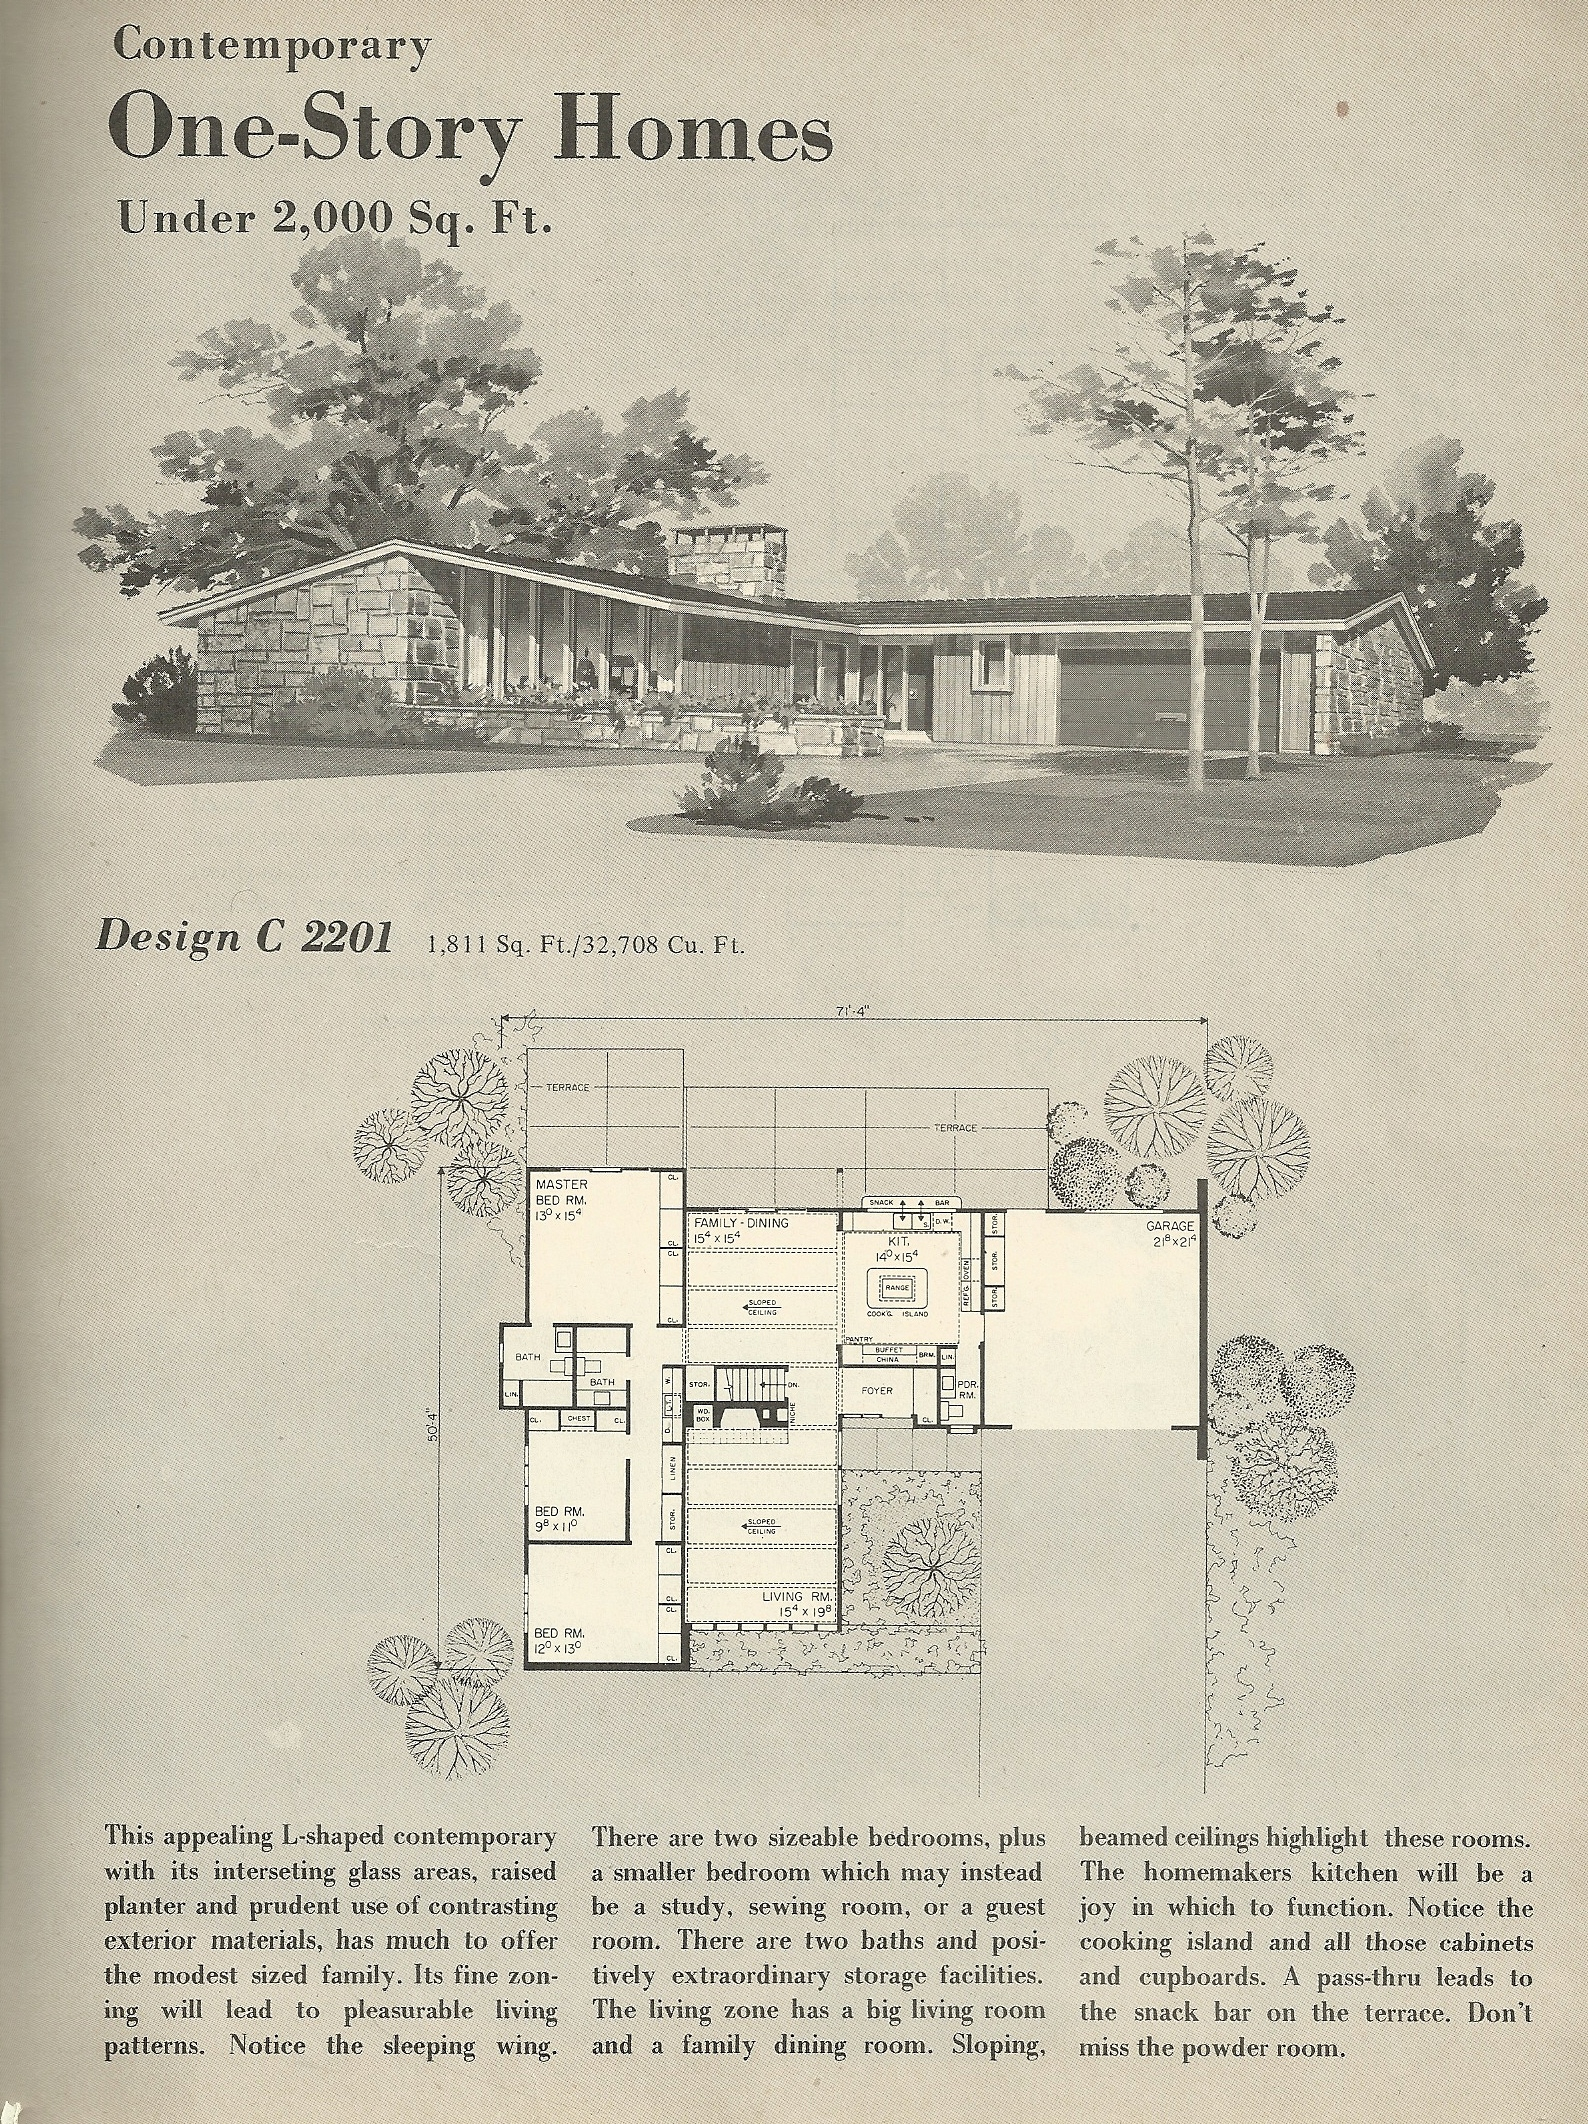 Vintage house plans 2201 antique alter ego for Mid century modern plans